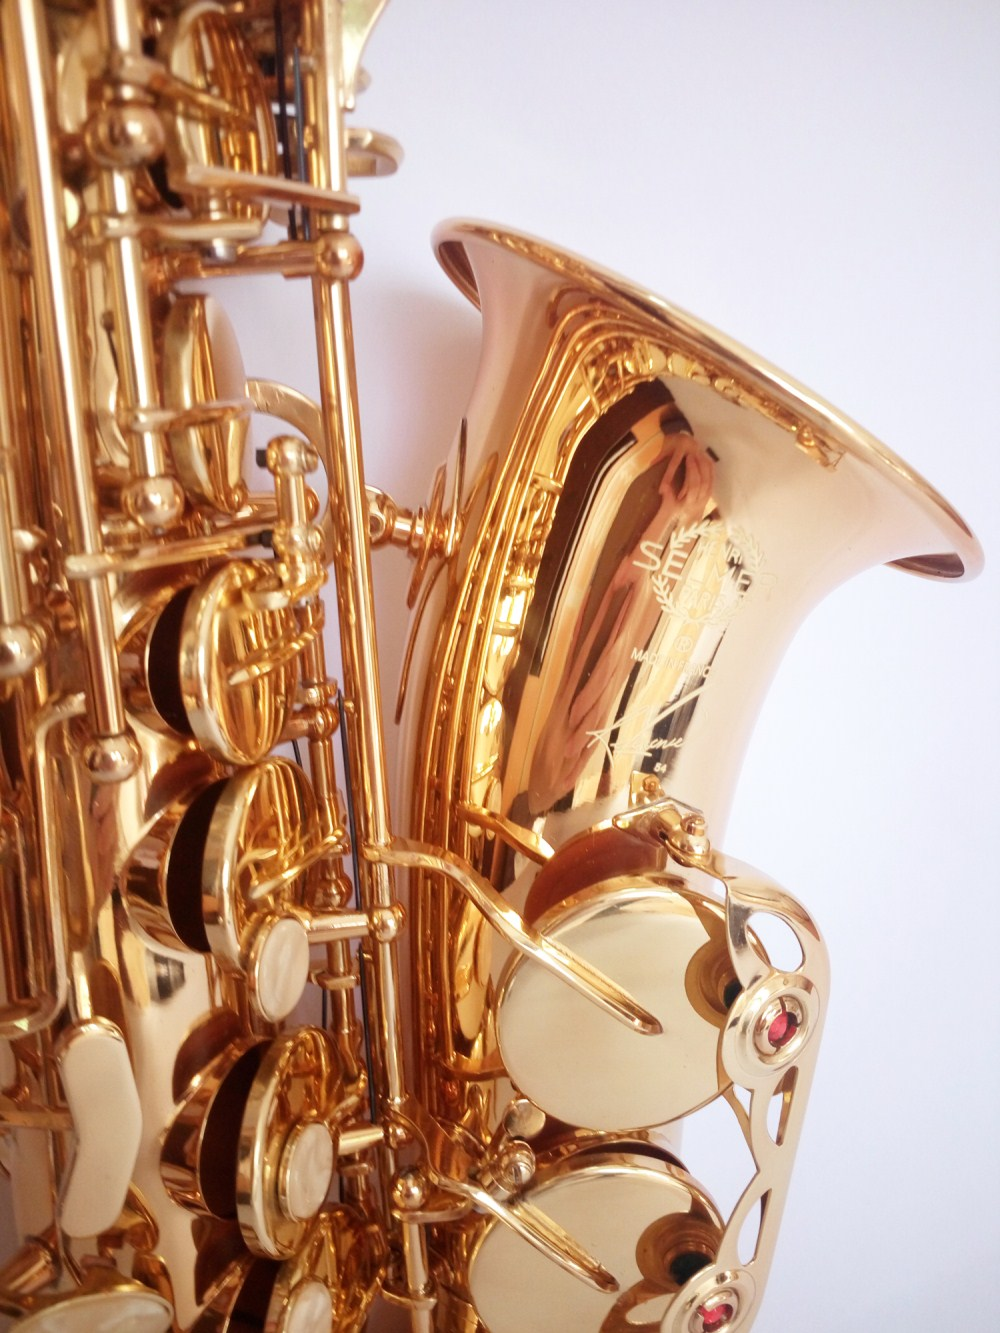 Sales Alto Sax France Selmer 54 Saxophone Eb playing music real photo shoot New Sax electrophoresis Golden Saxophone Promotions